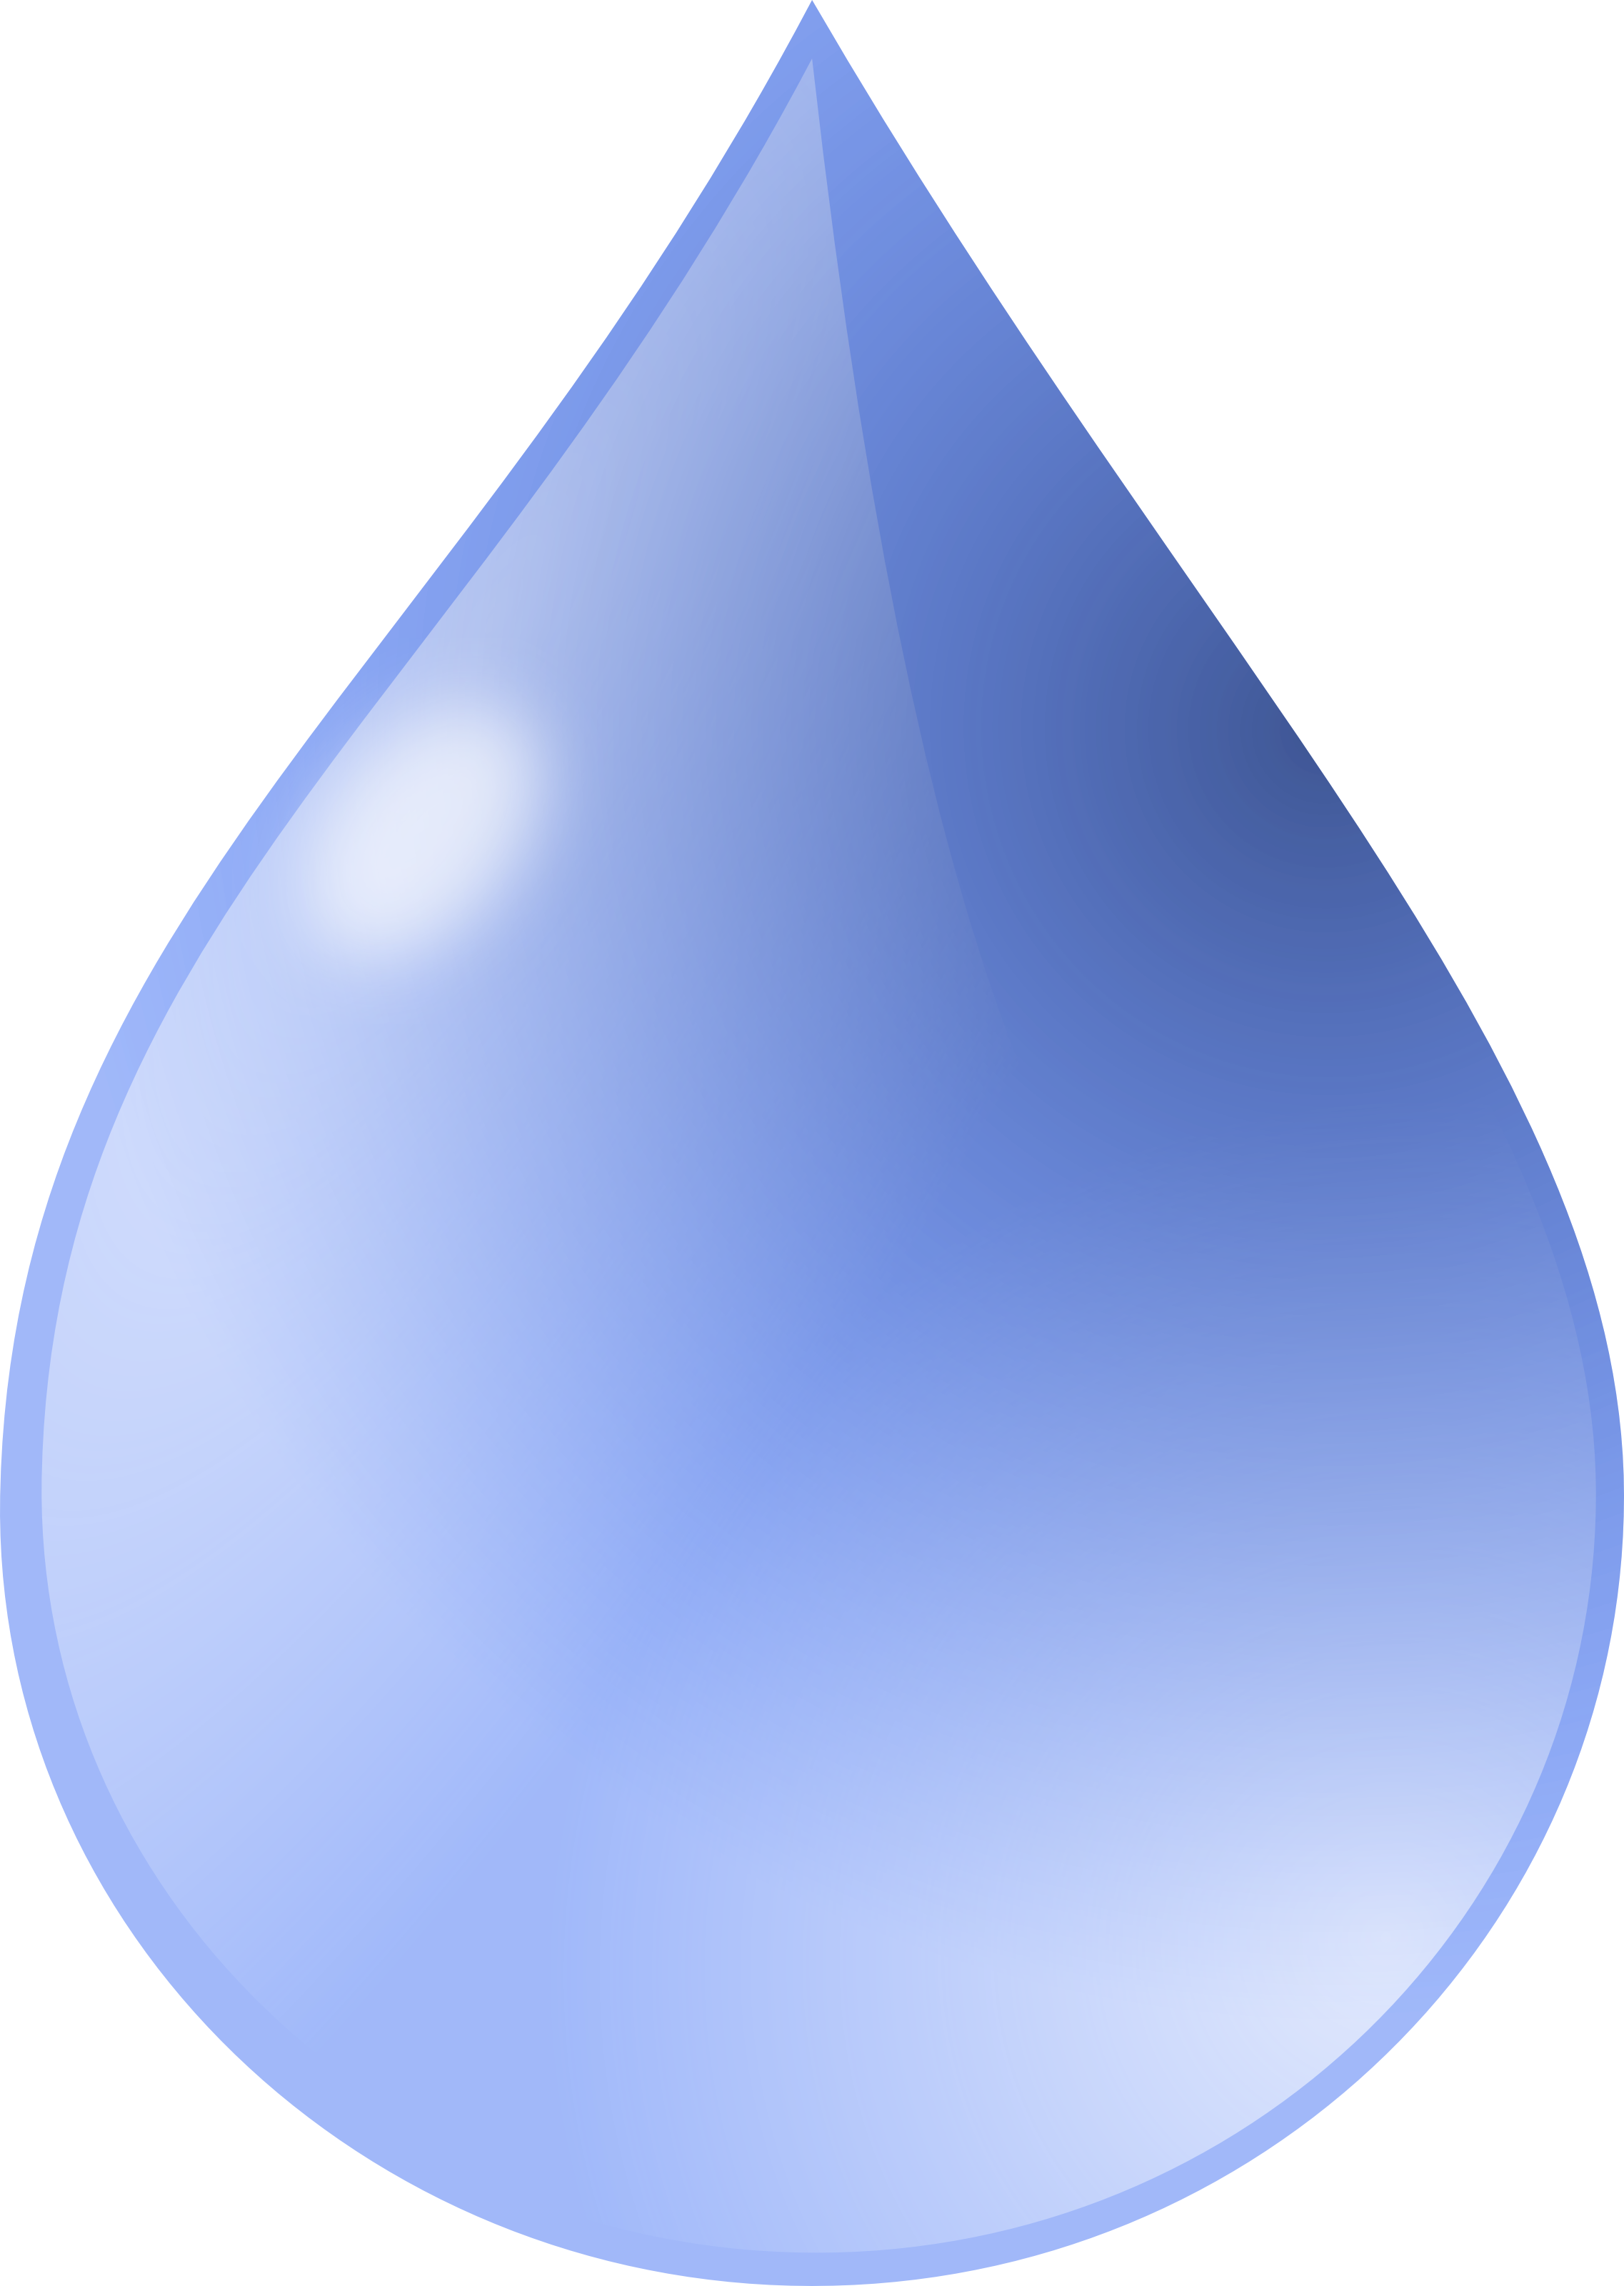 Waterdrop clipart water splash #14